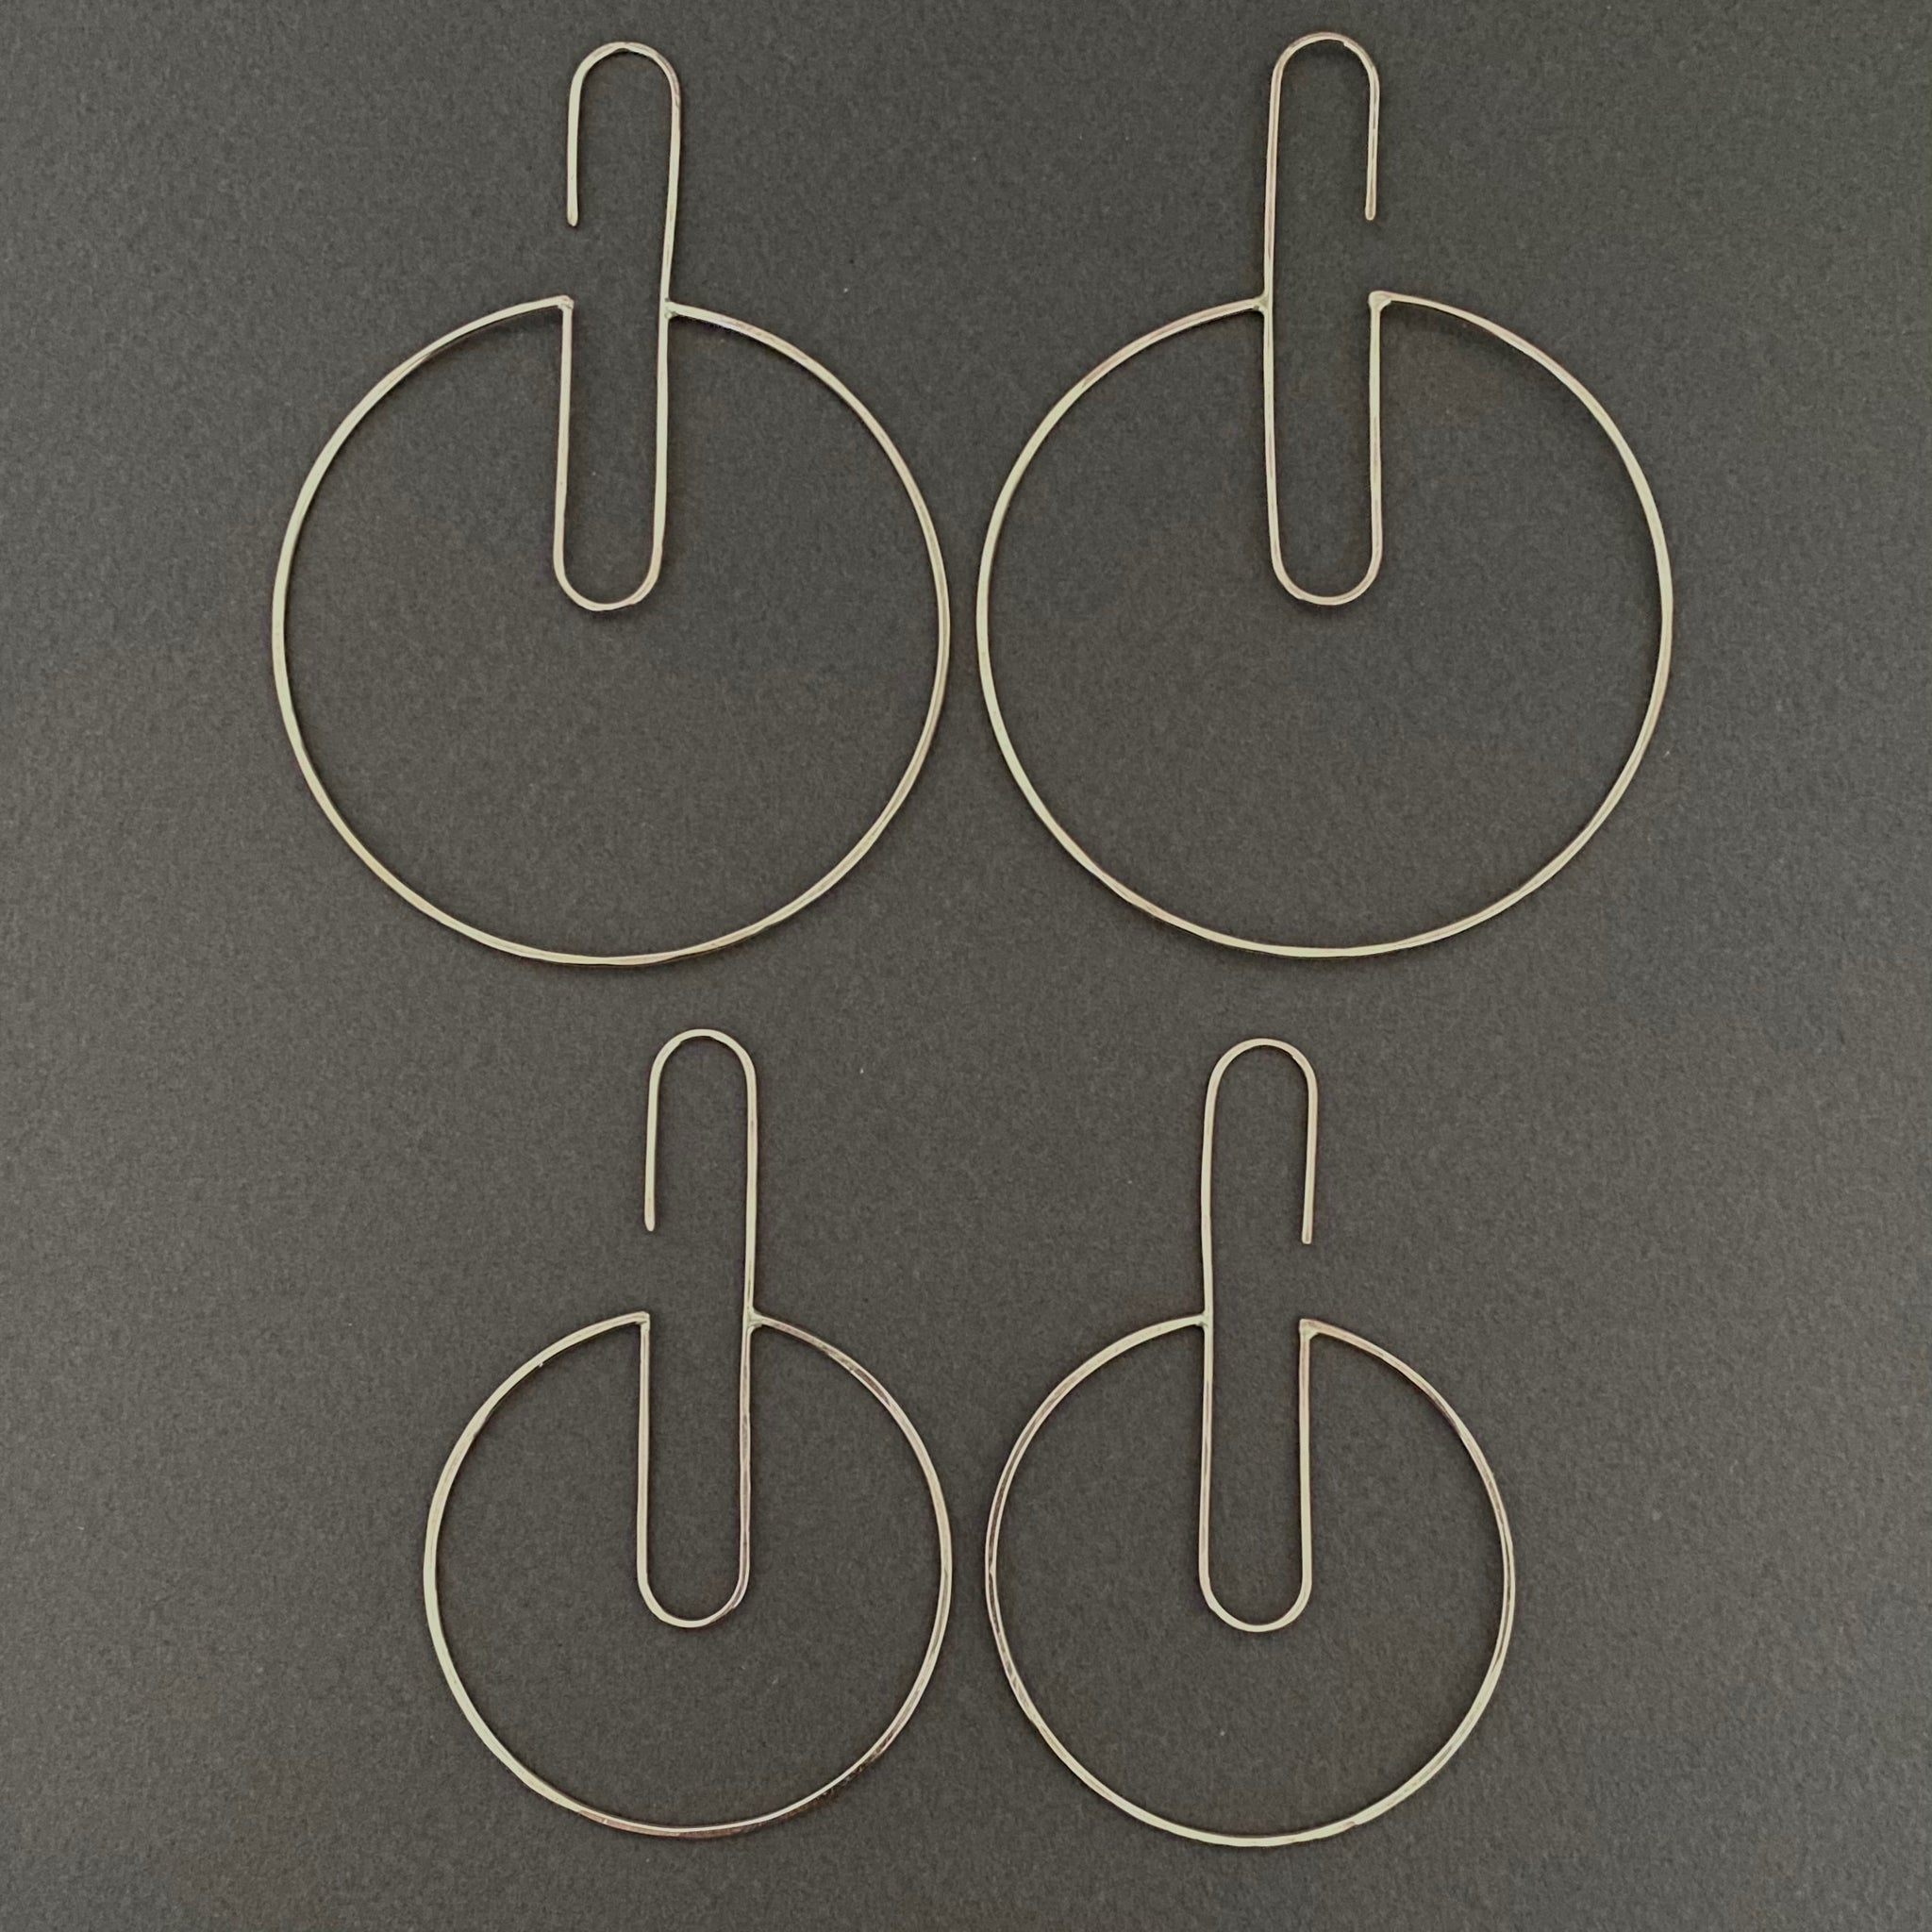 Double U Hoop - Round, Long, Narrow